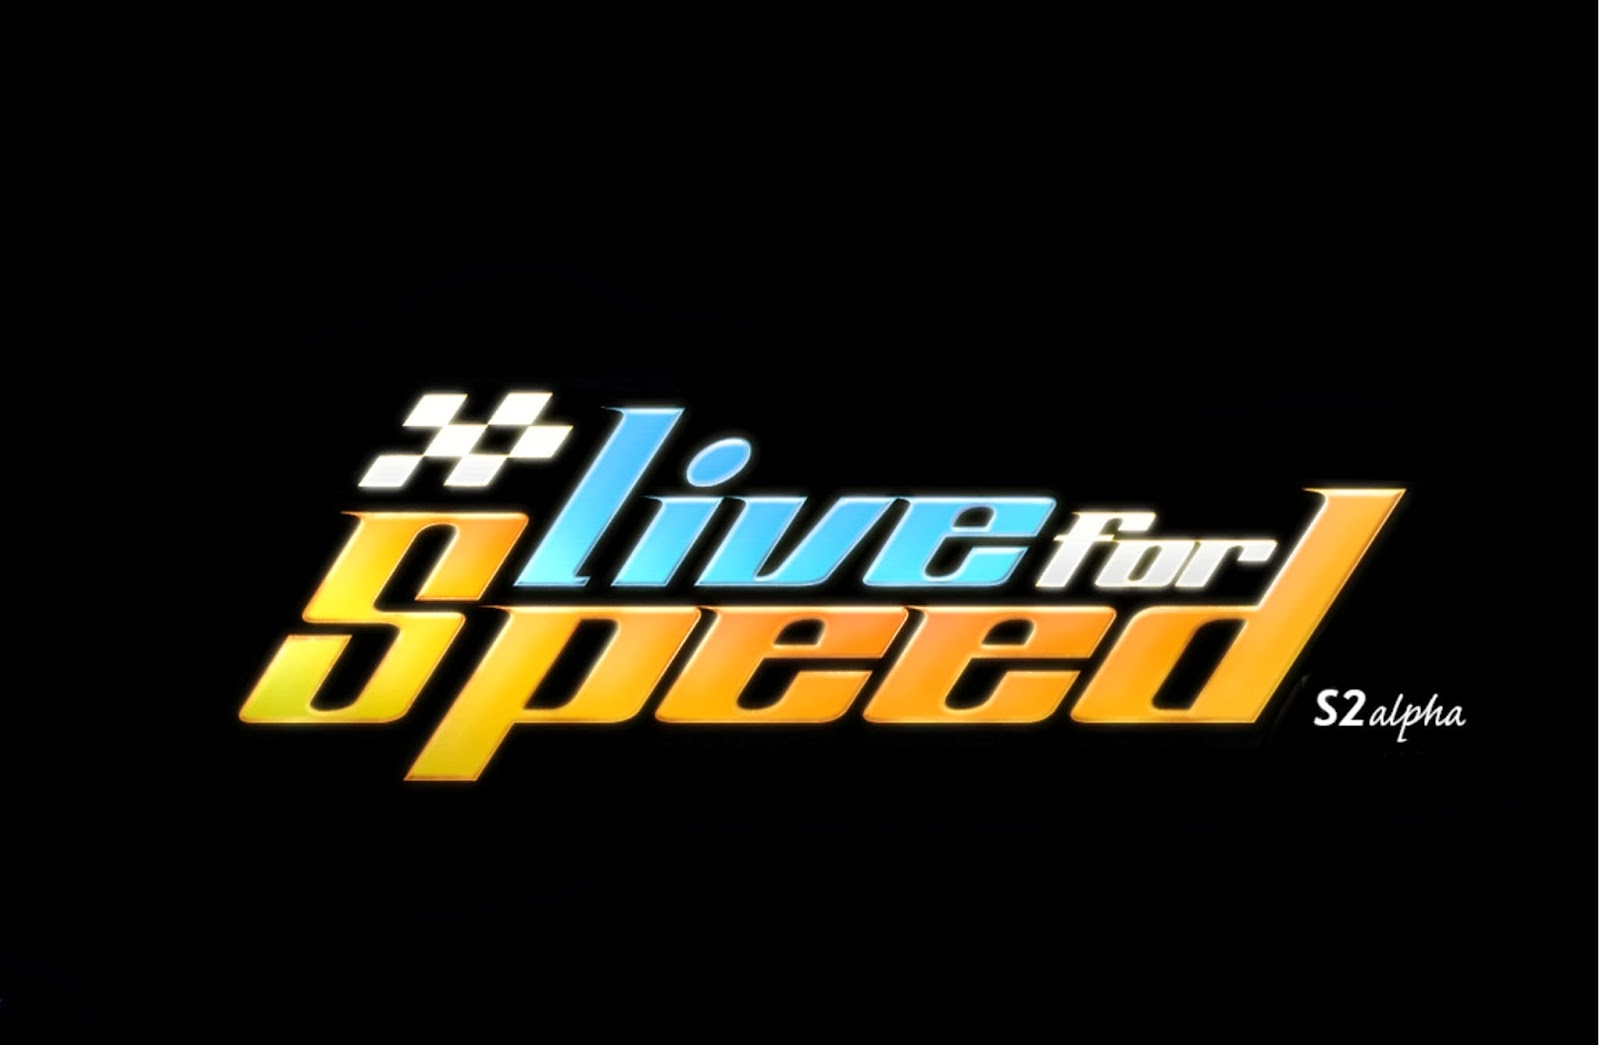 Live For Speed S2 Alpha 0.5z - DownloadKeeper